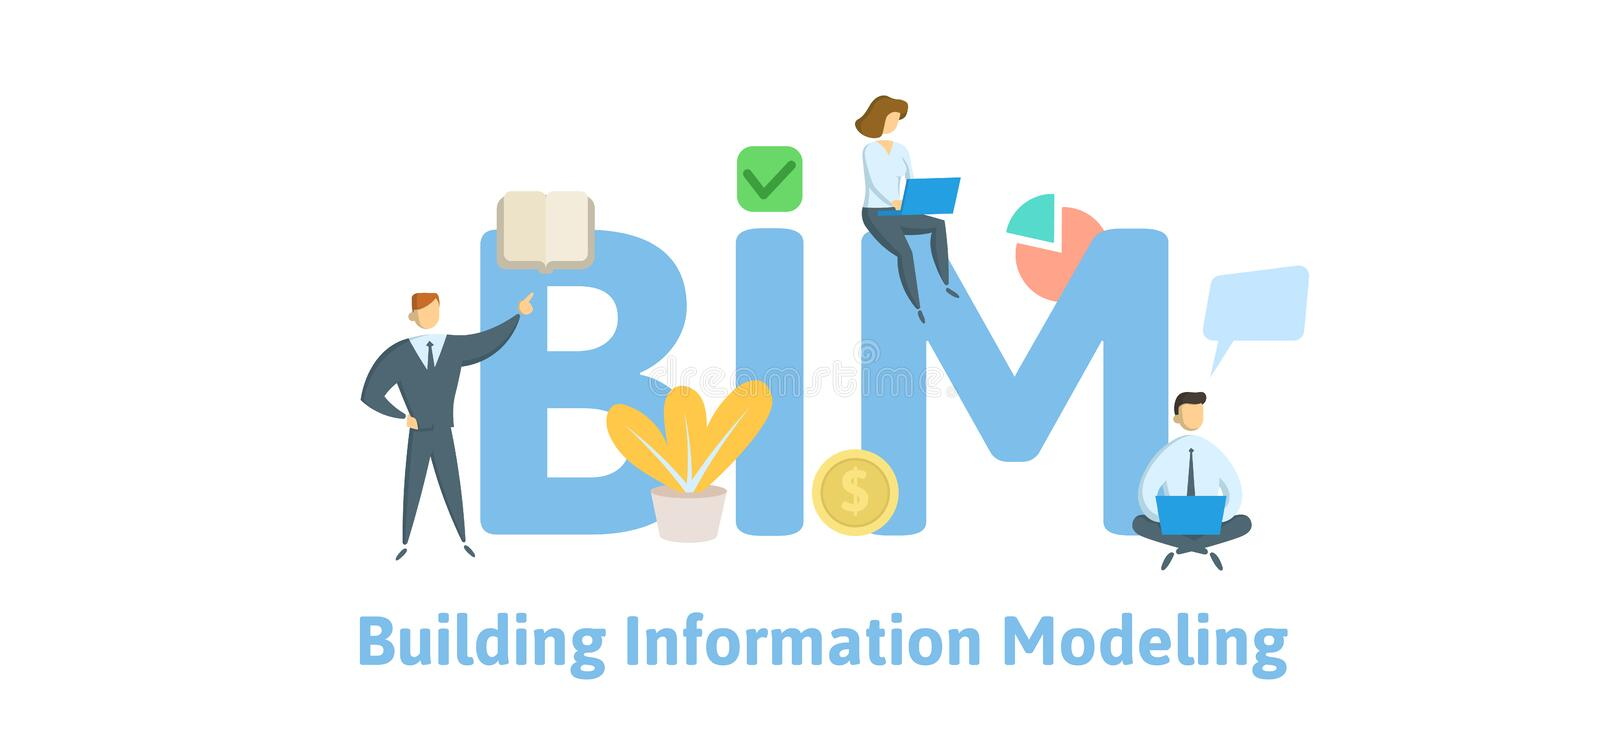 BIM byggande modellera f stock illustrationer